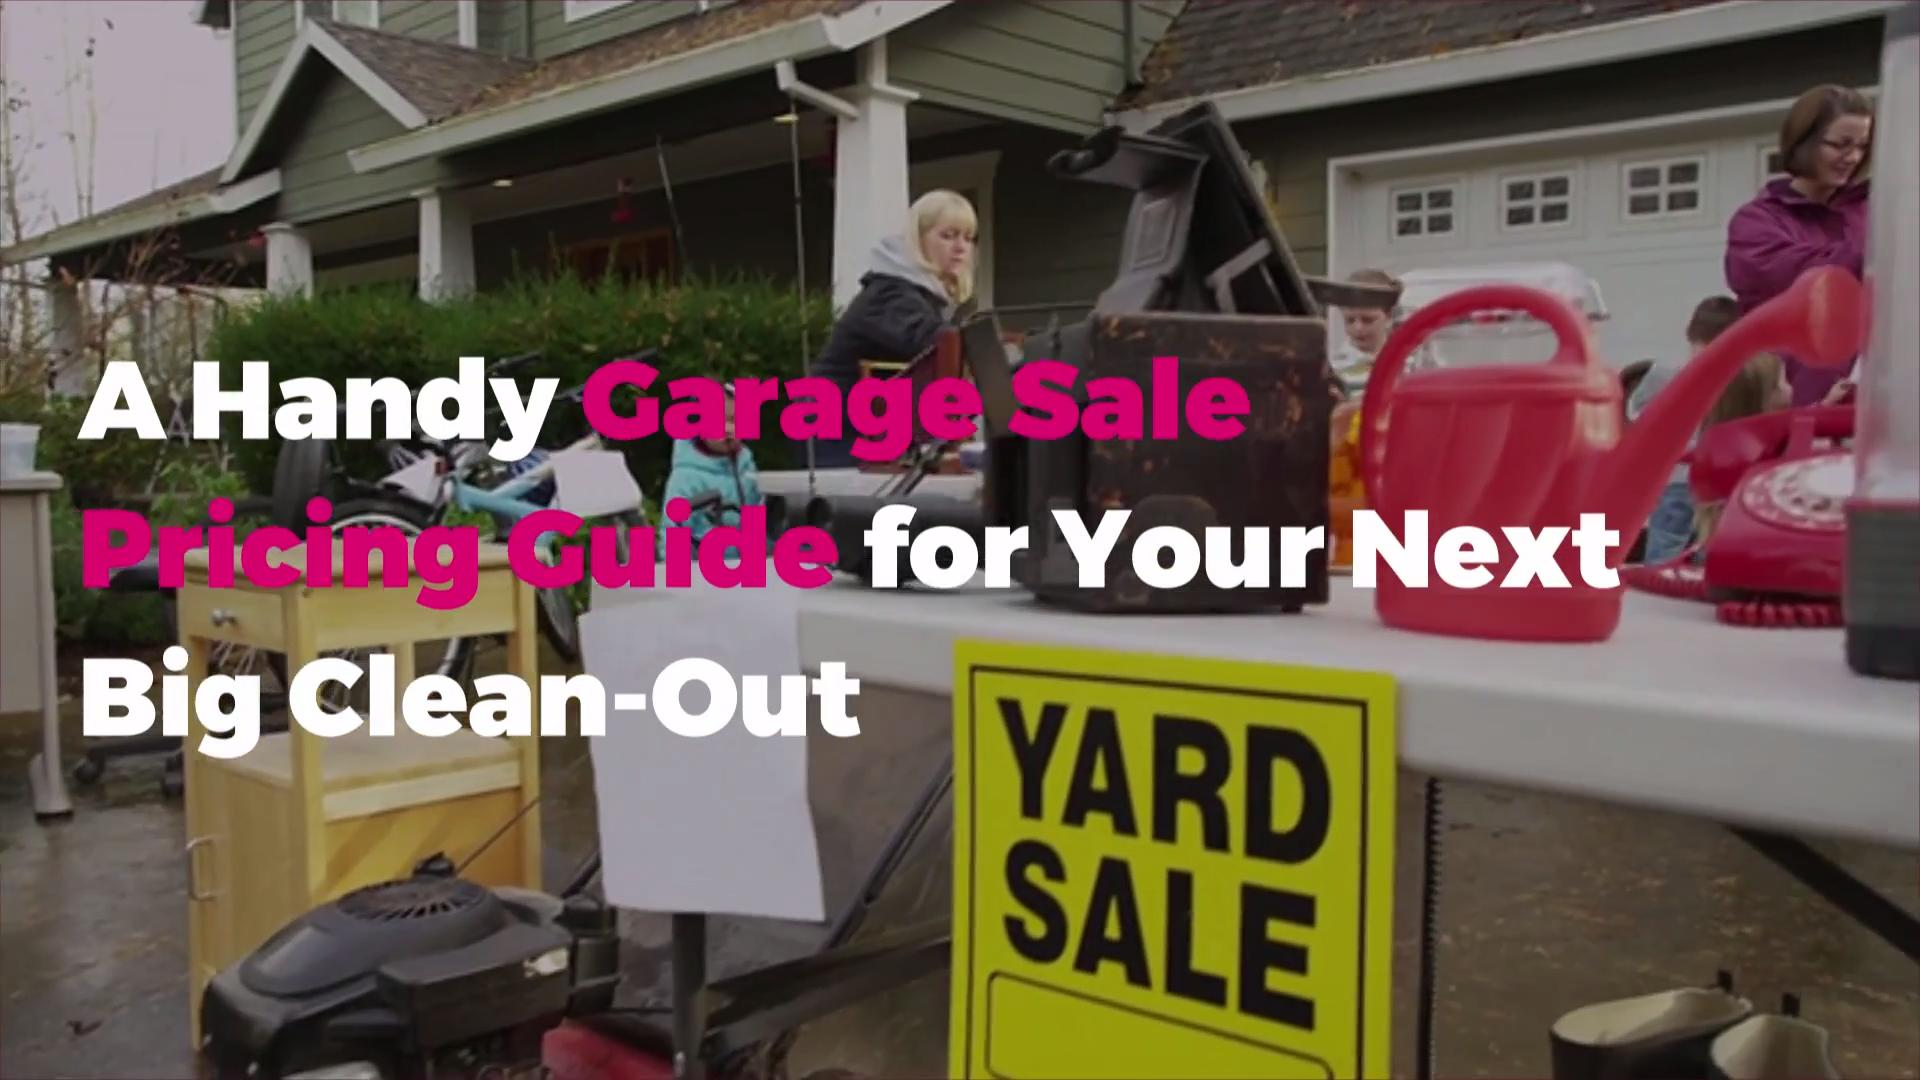 A Handy Garage Sale Pricing Guide for Your Next Clear-Out